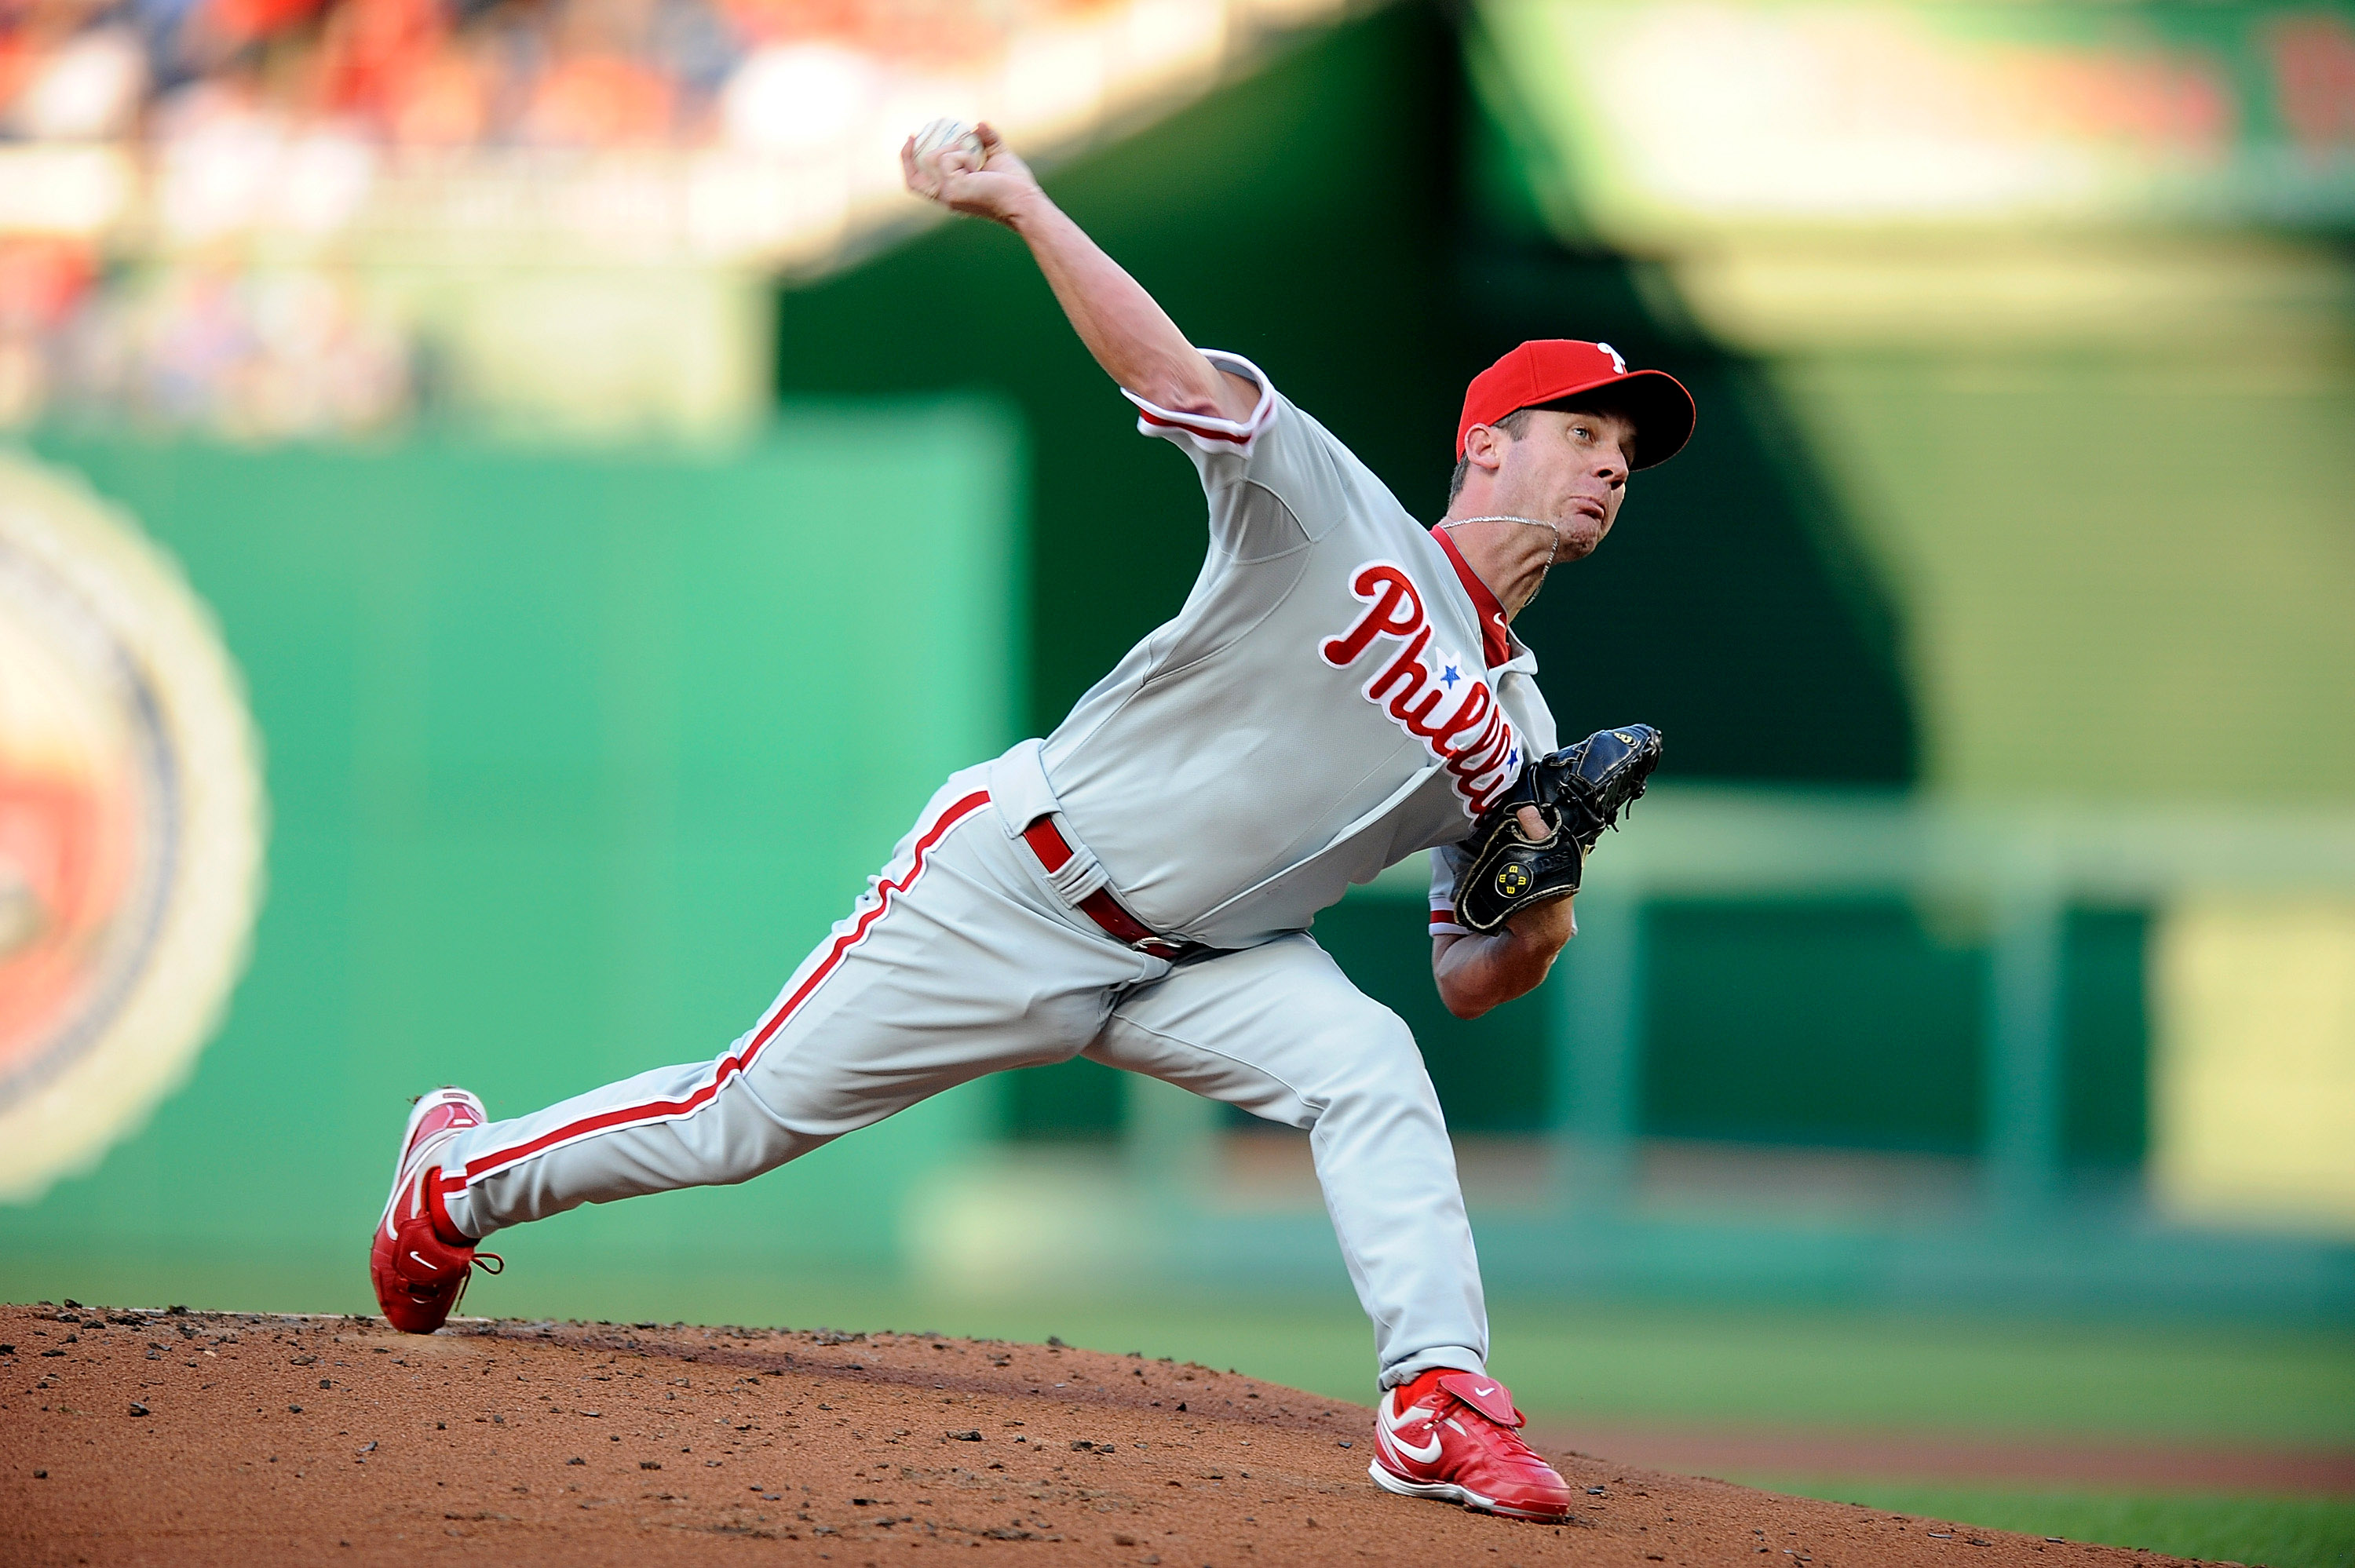 WASHINGTON - JULY 30:  Roy Oswalt #44 of the Philadelphia Phillies pitches against the Washington Nationals at Nationals Park on July 30, 2010 in Washington, DC.  (Photo by Greg Fiume/Getty Images)